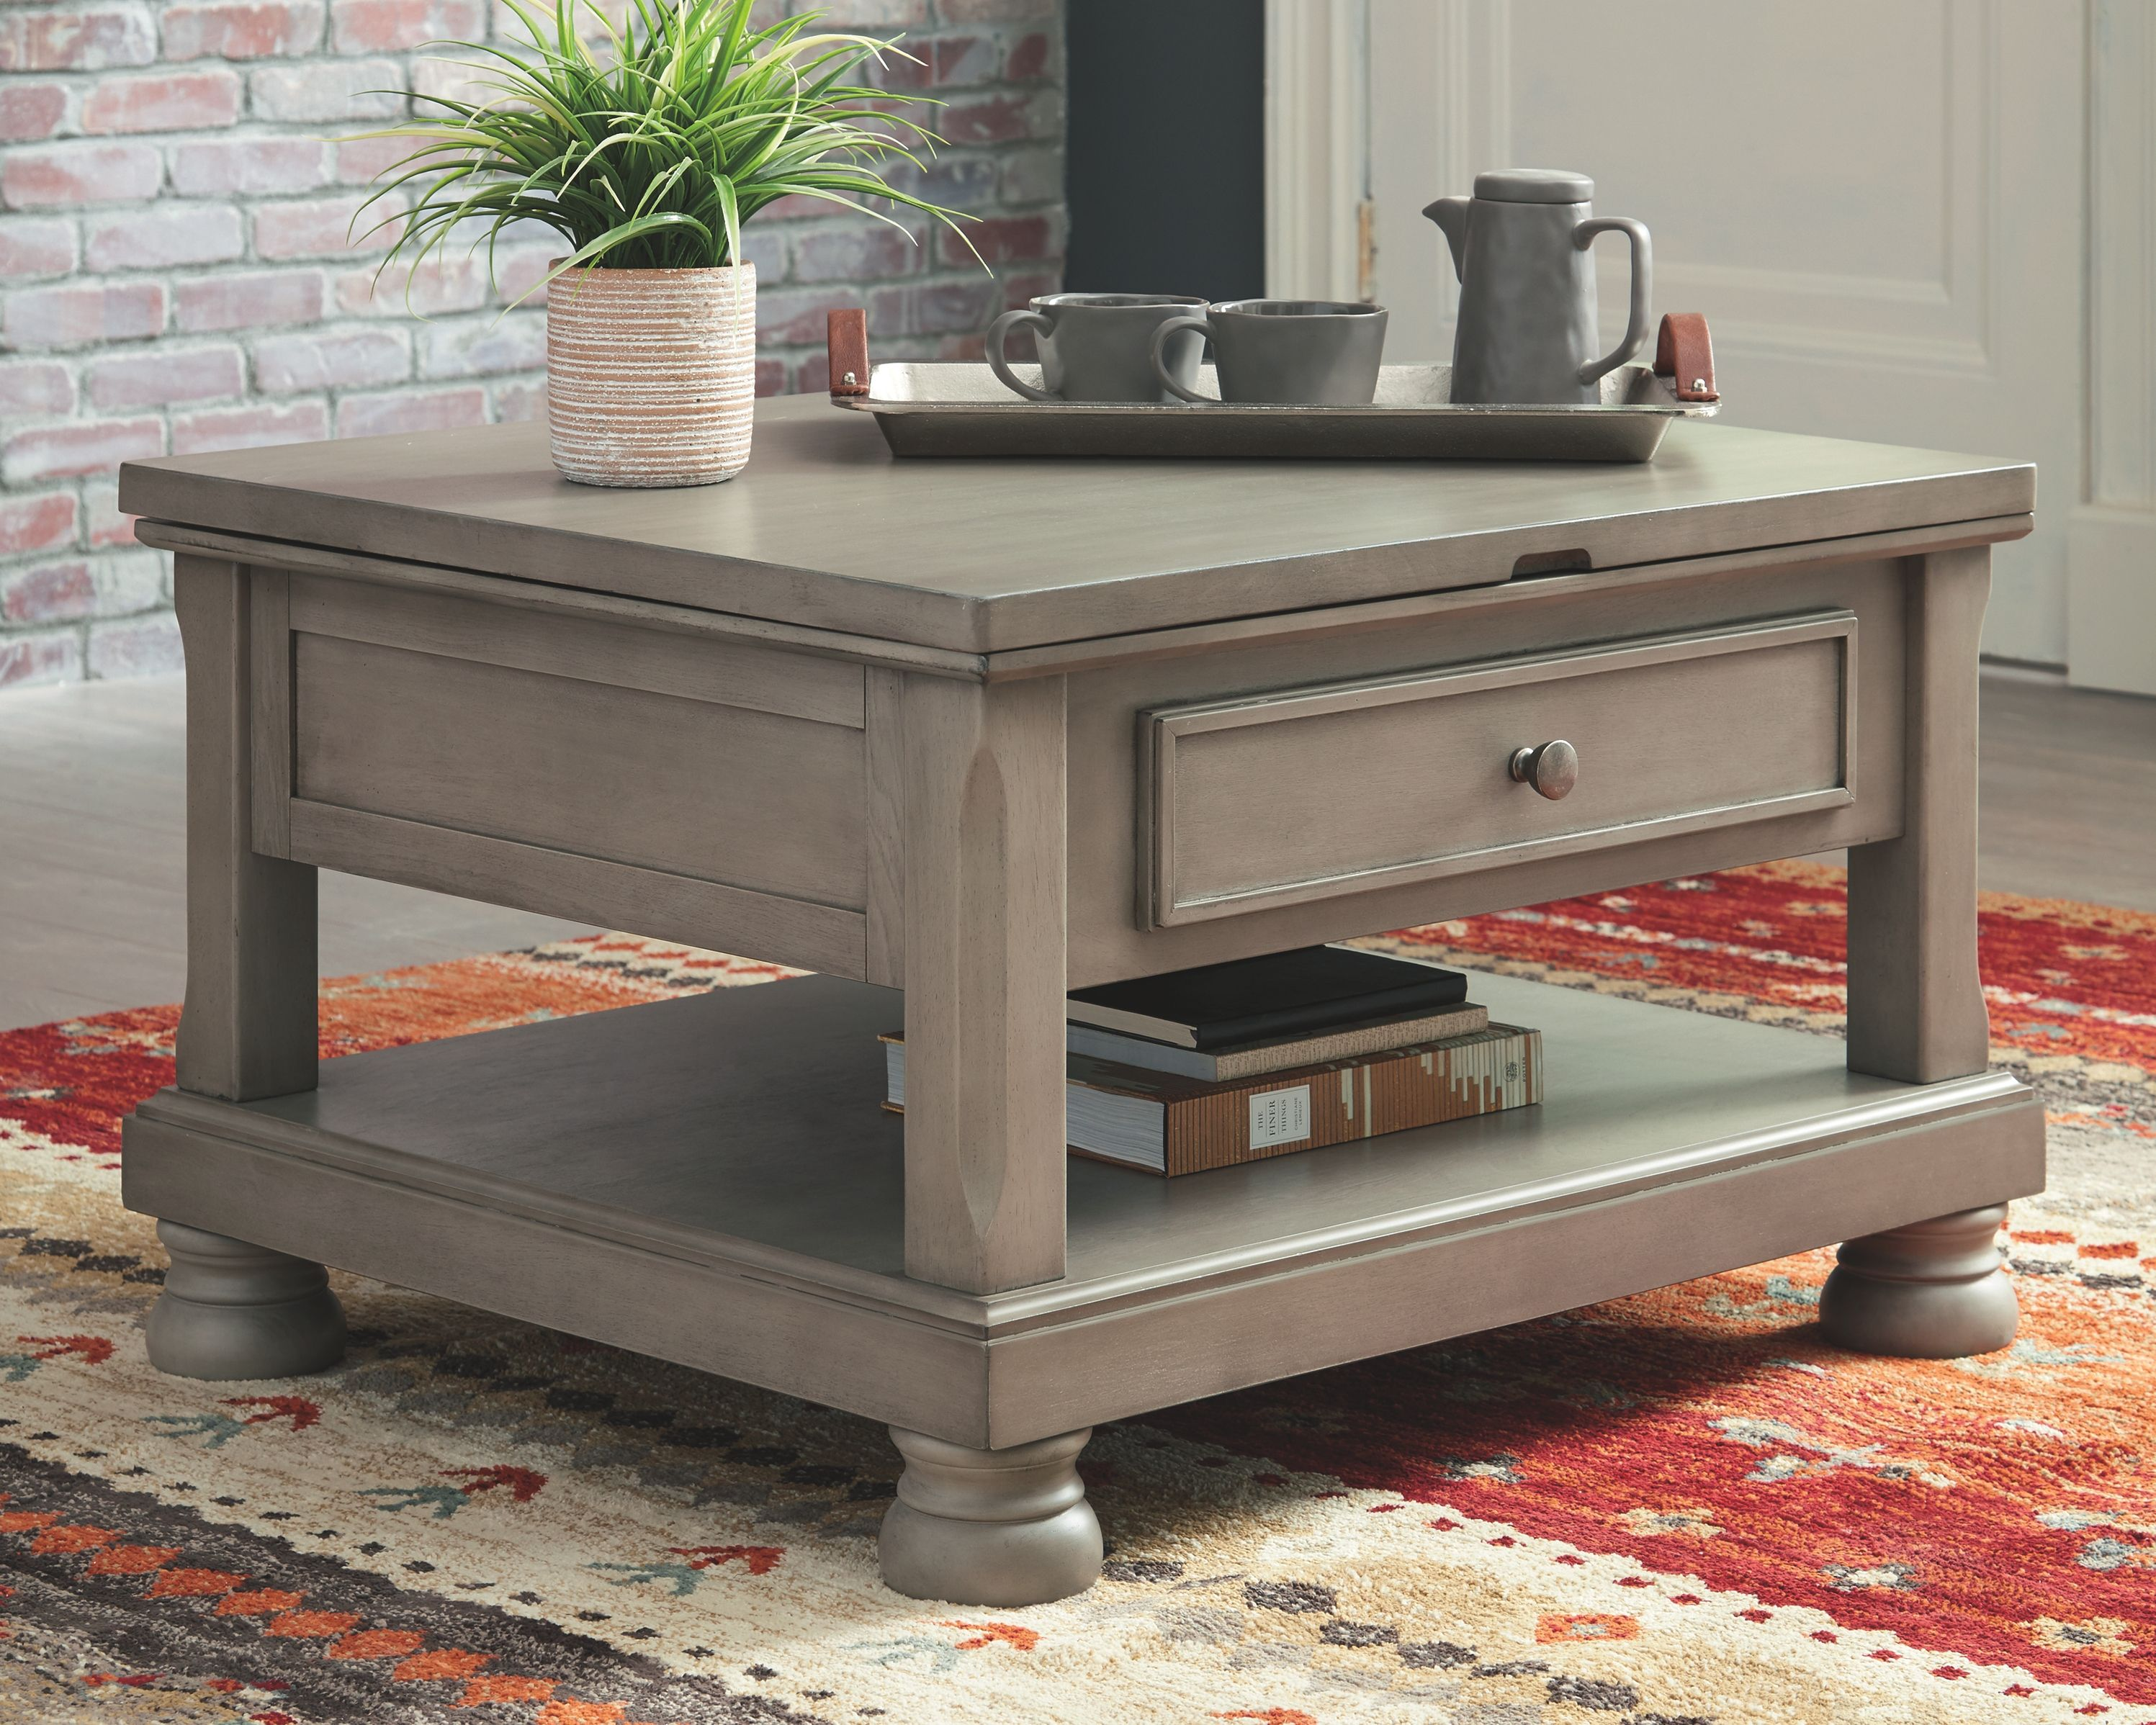 Lettner Coffee Table With Lift Top Gray Coffee Table Lift Top Coffee Table Coffee Table Grey [ 2396 x 2994 Pixel ]